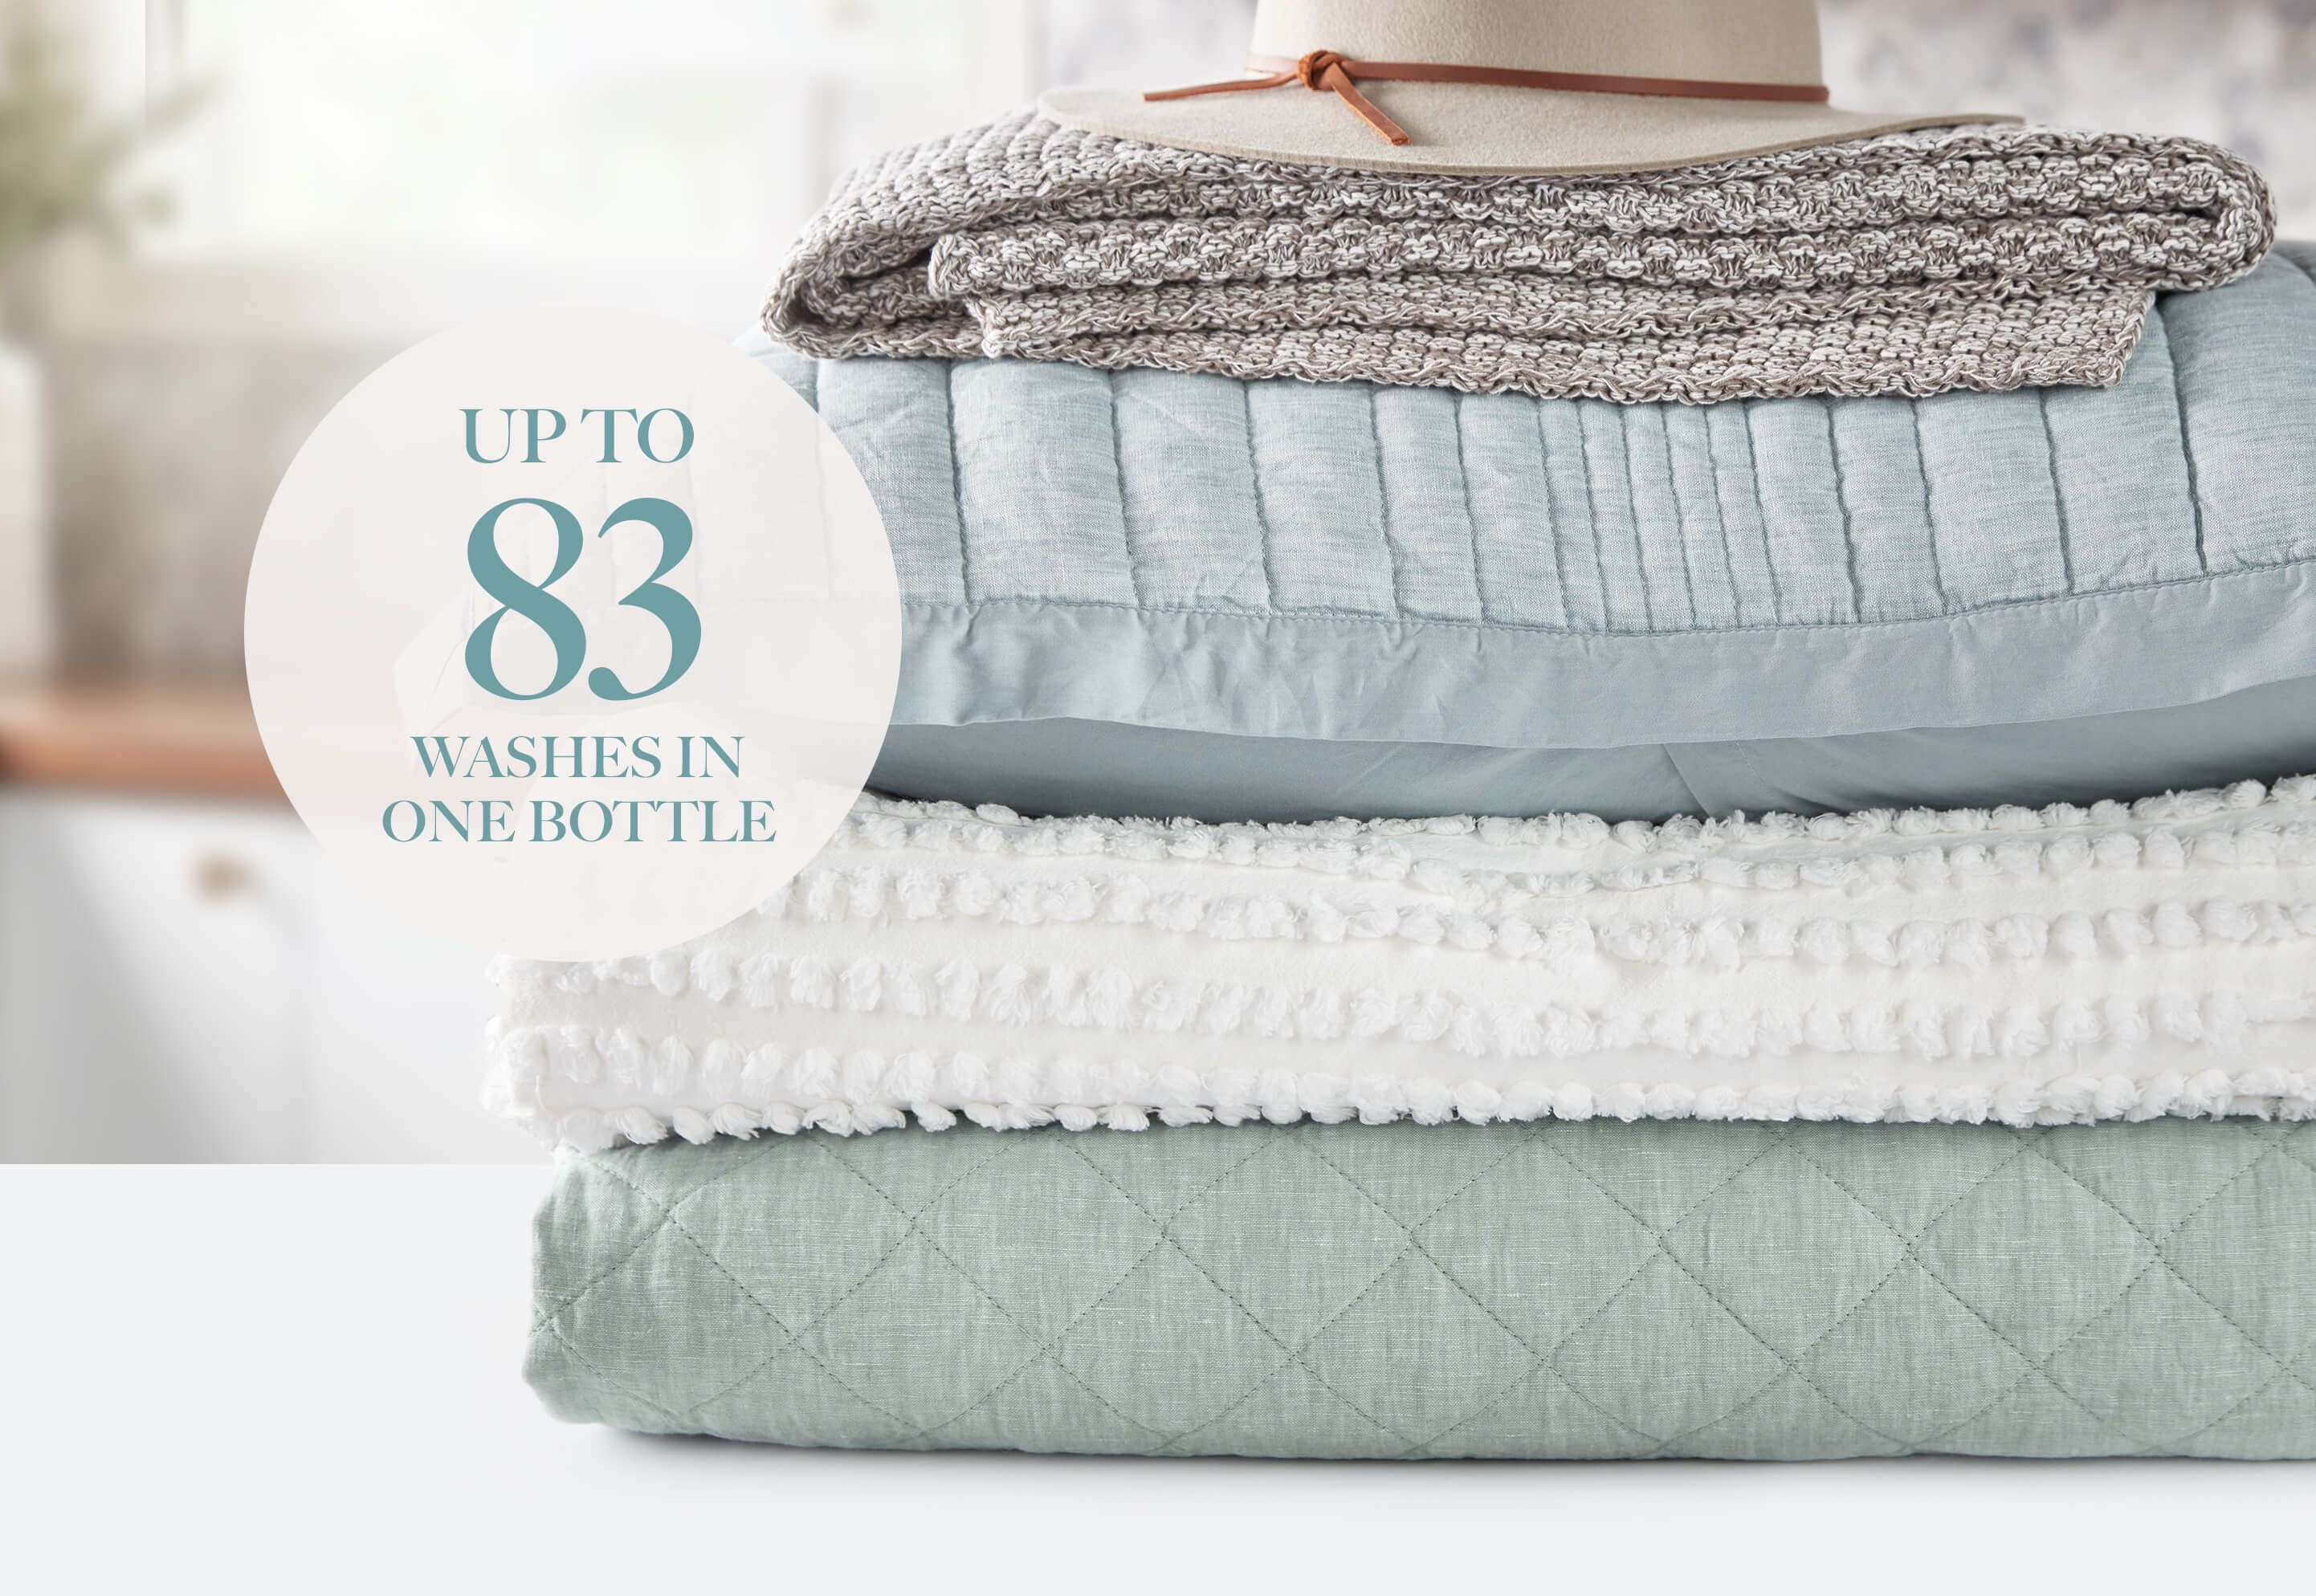 A stack of fresh laundry on a white countertop.